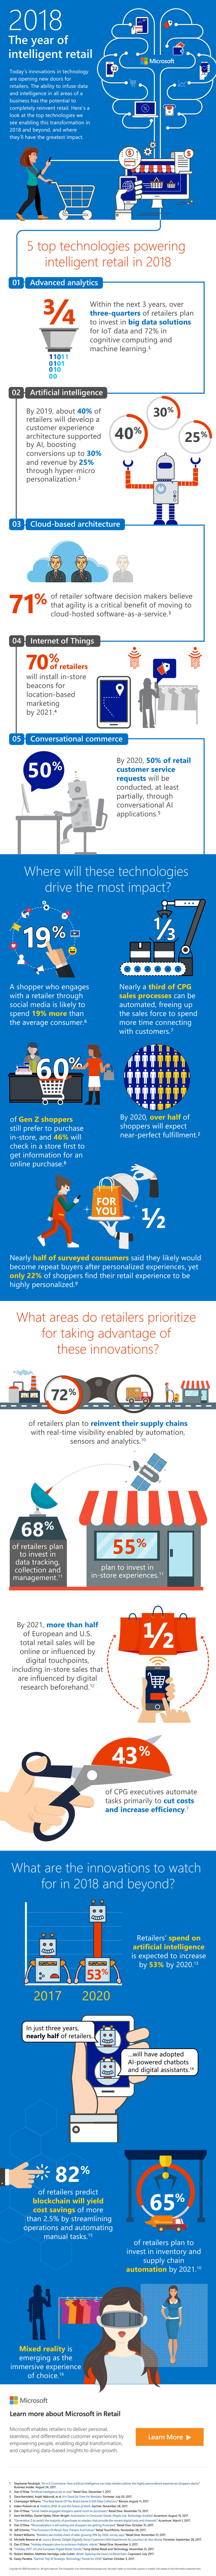 2018 the year of intelligent retail- infographic